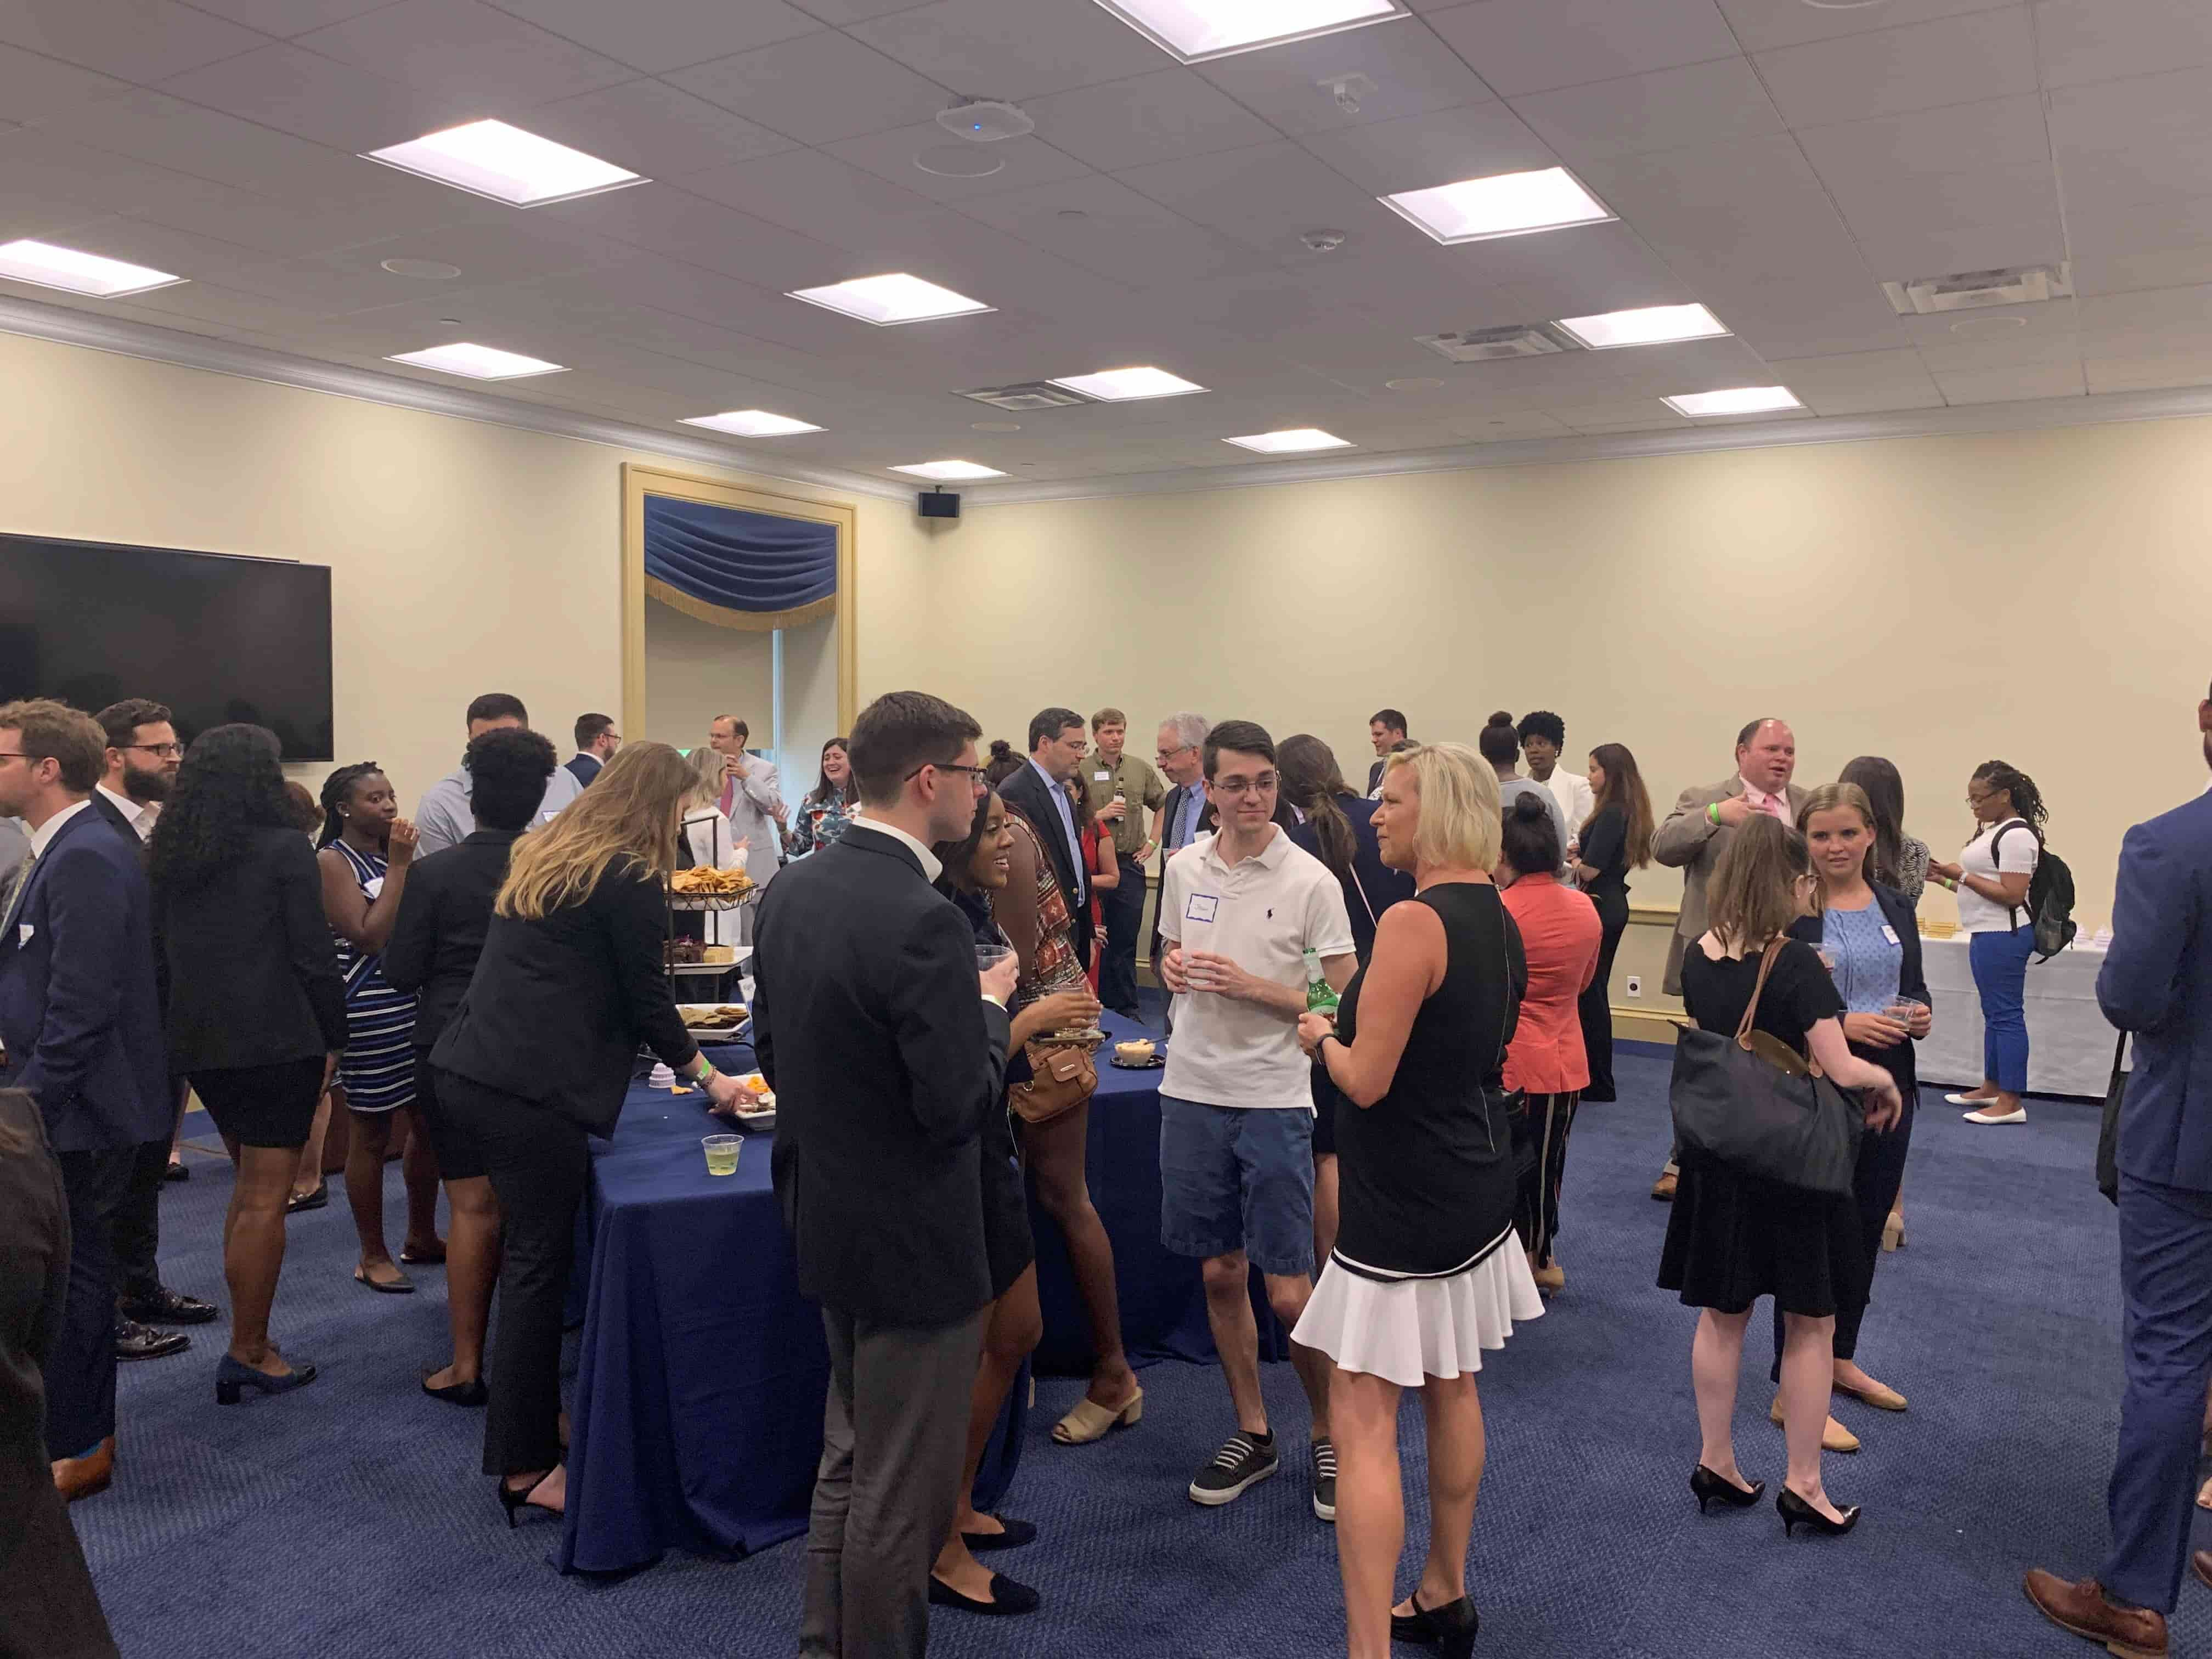 Attendees of the Happy Hour on the Hill event mingle with snacks and drinks